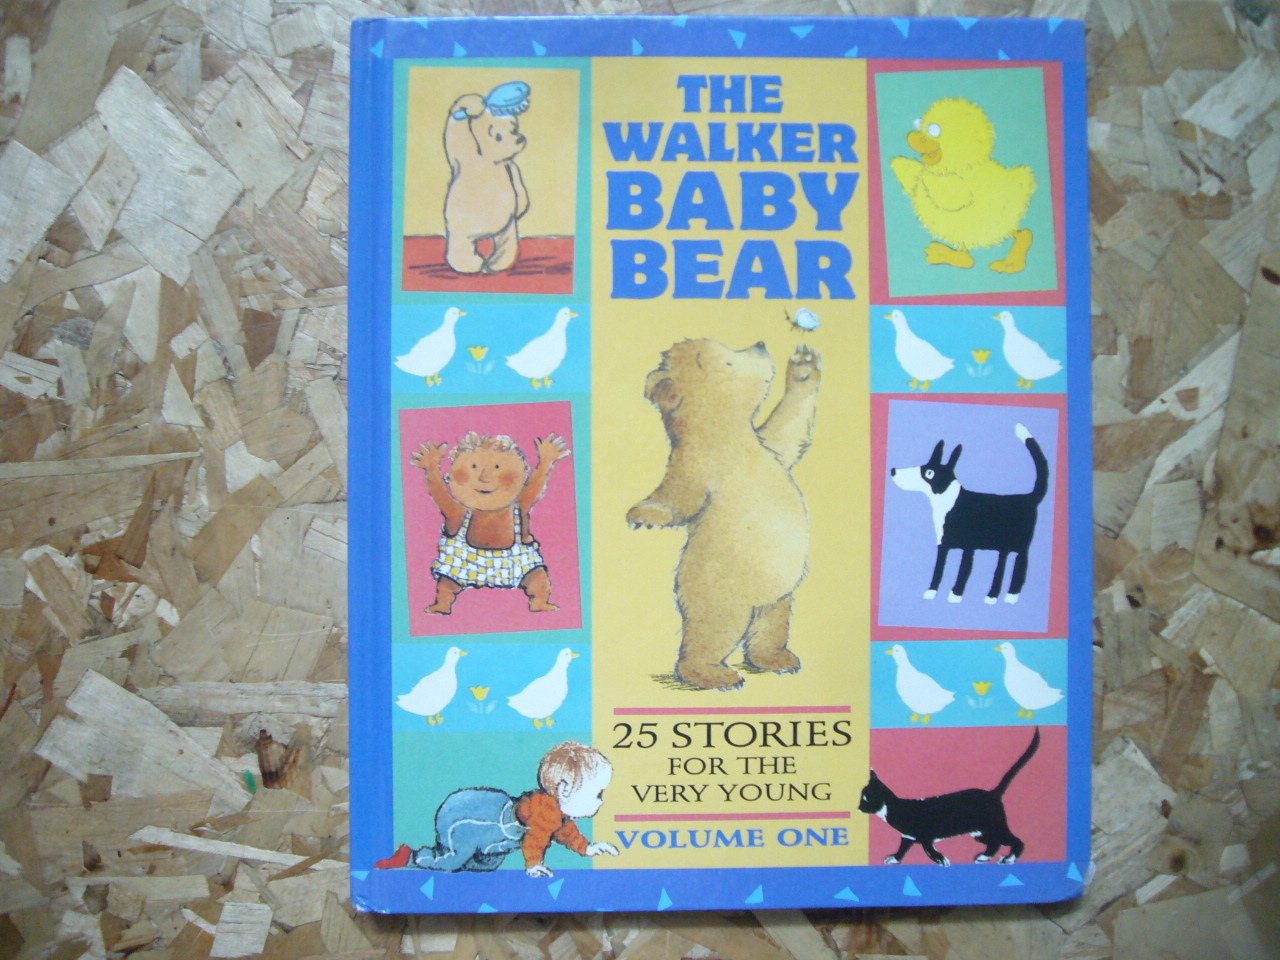 The Walker Baby Bear